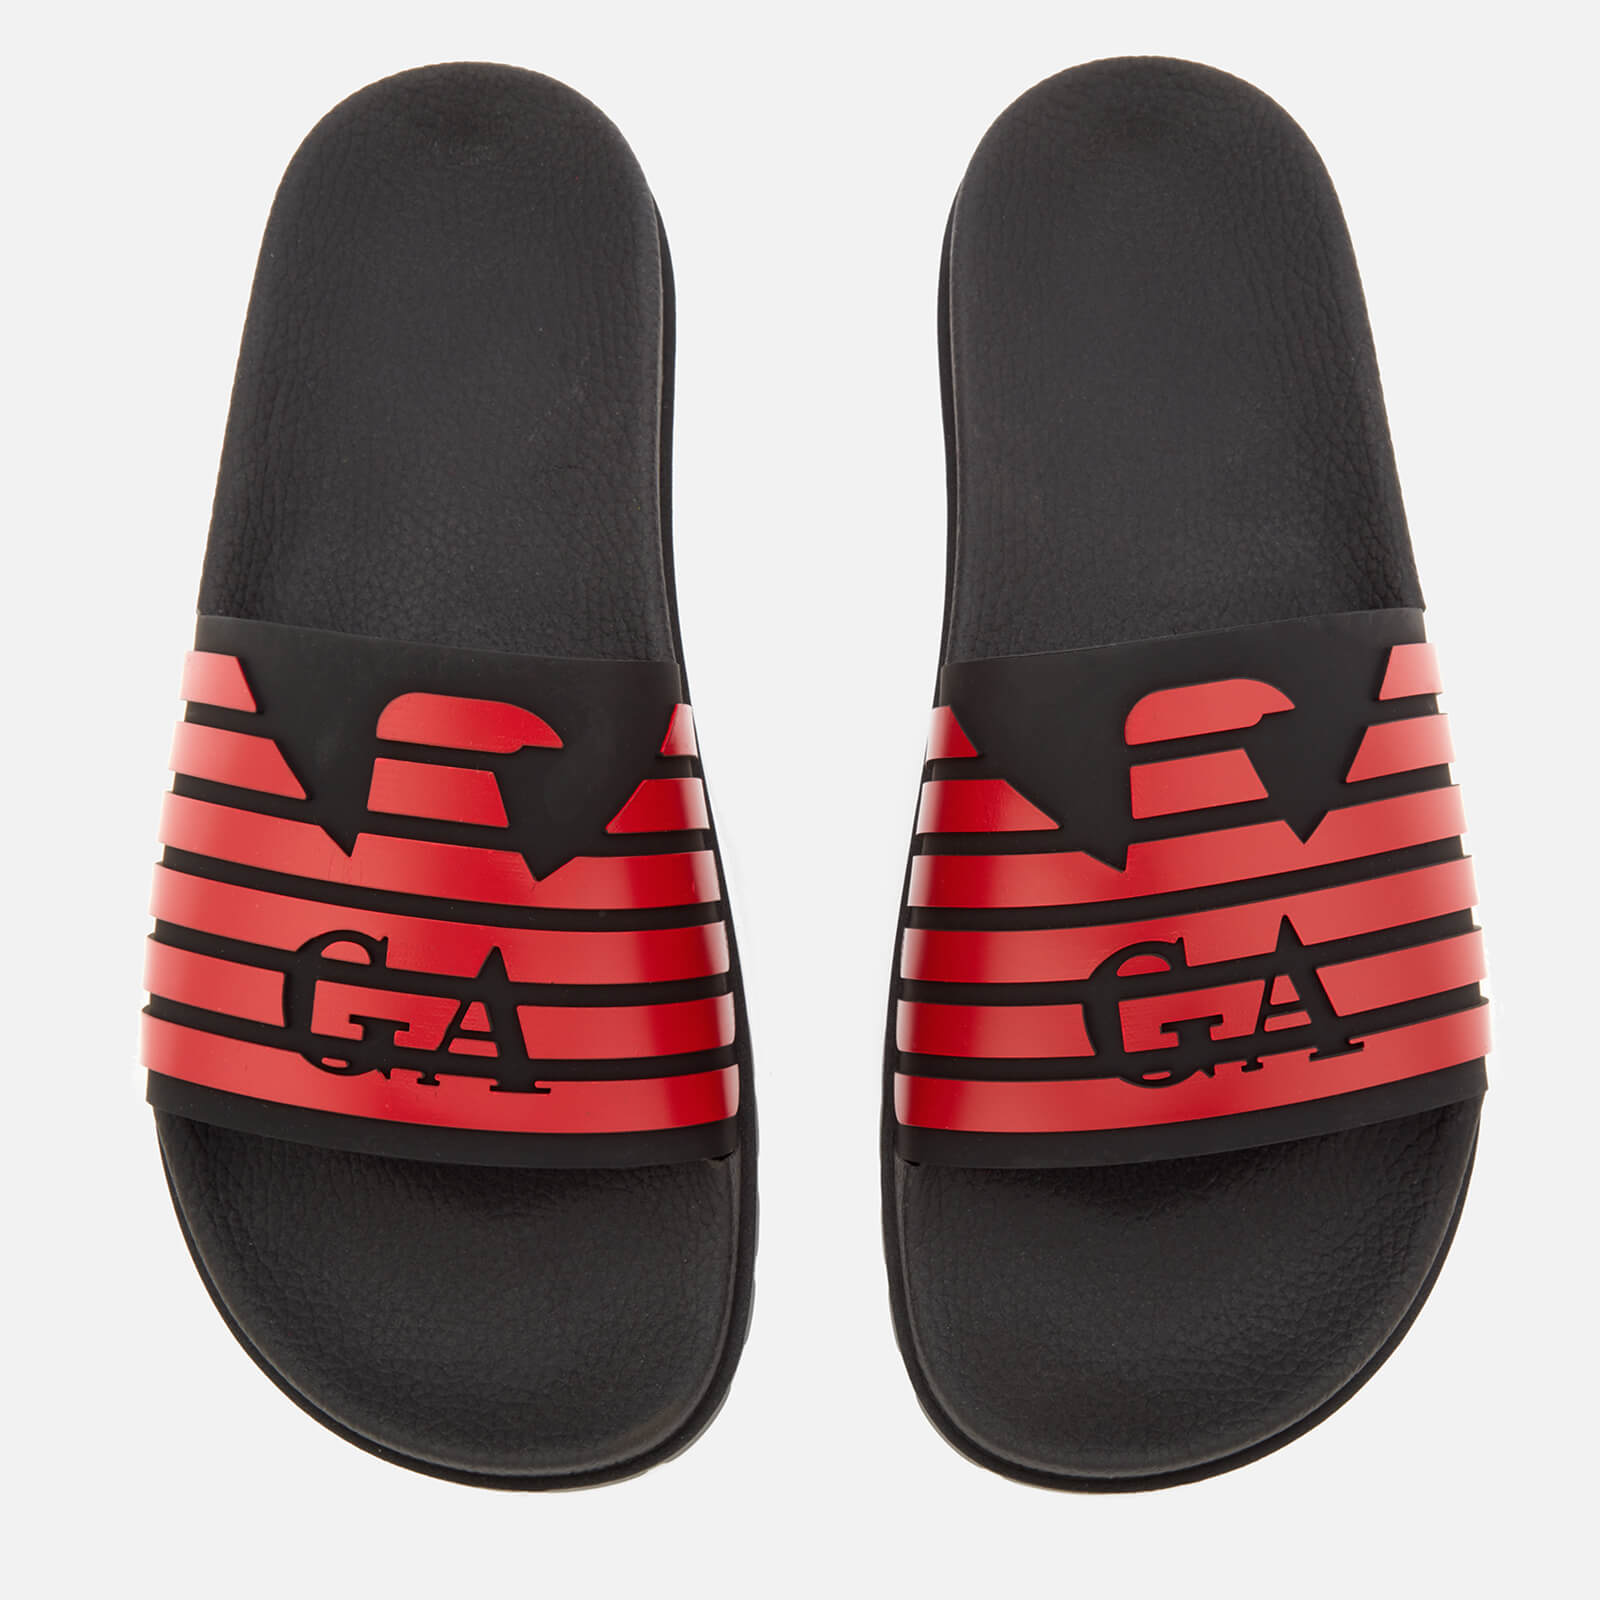 28b6ecee5a47 Emporio Armani Men s Slide Sandals - Black Red - Free UK Delivery over £50